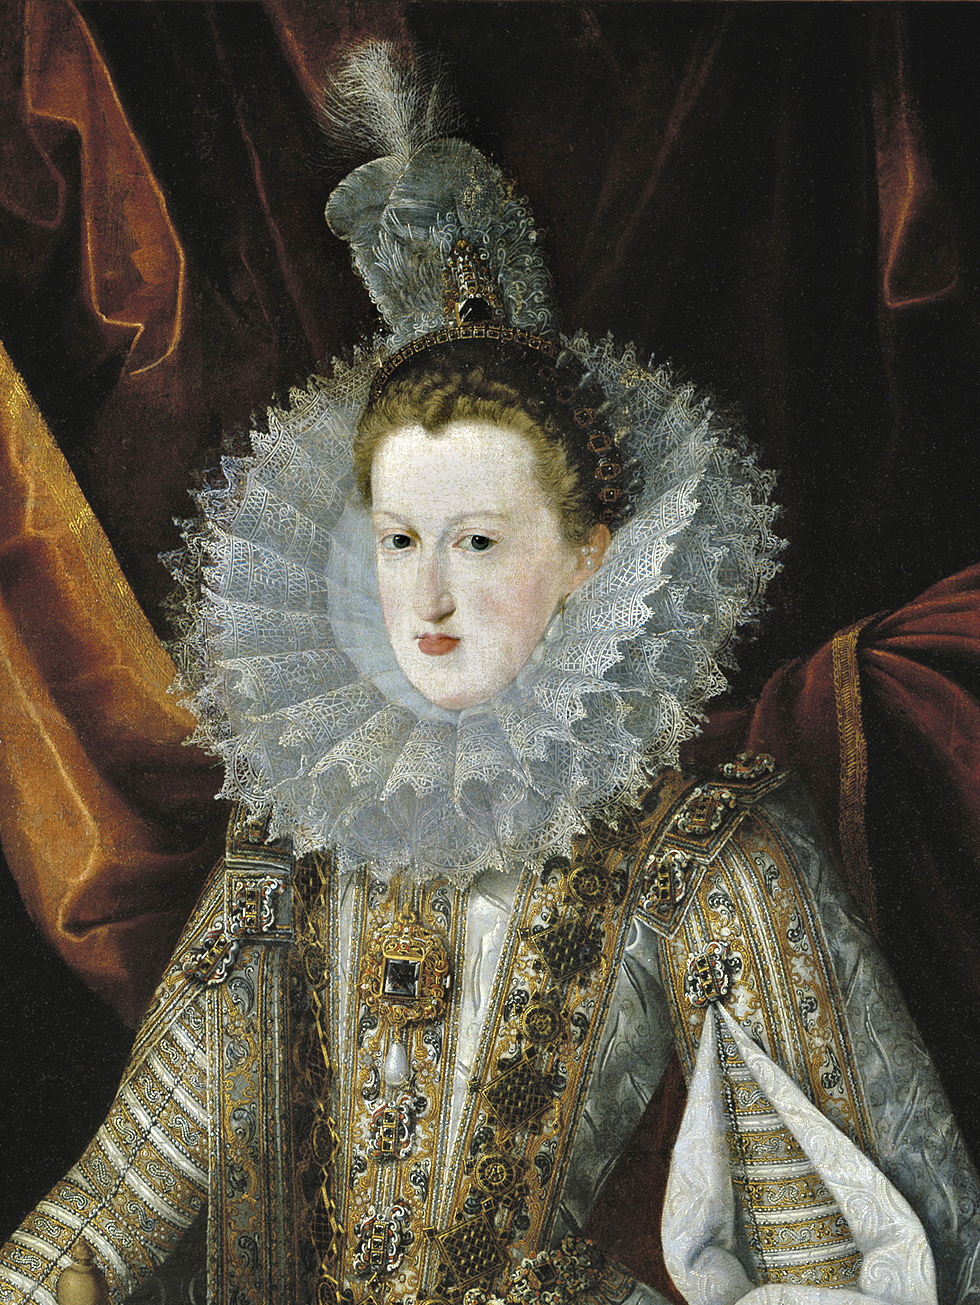 Margaret of Austria, Queen of Spain, wearing La Peregrina Pearl in about 1606